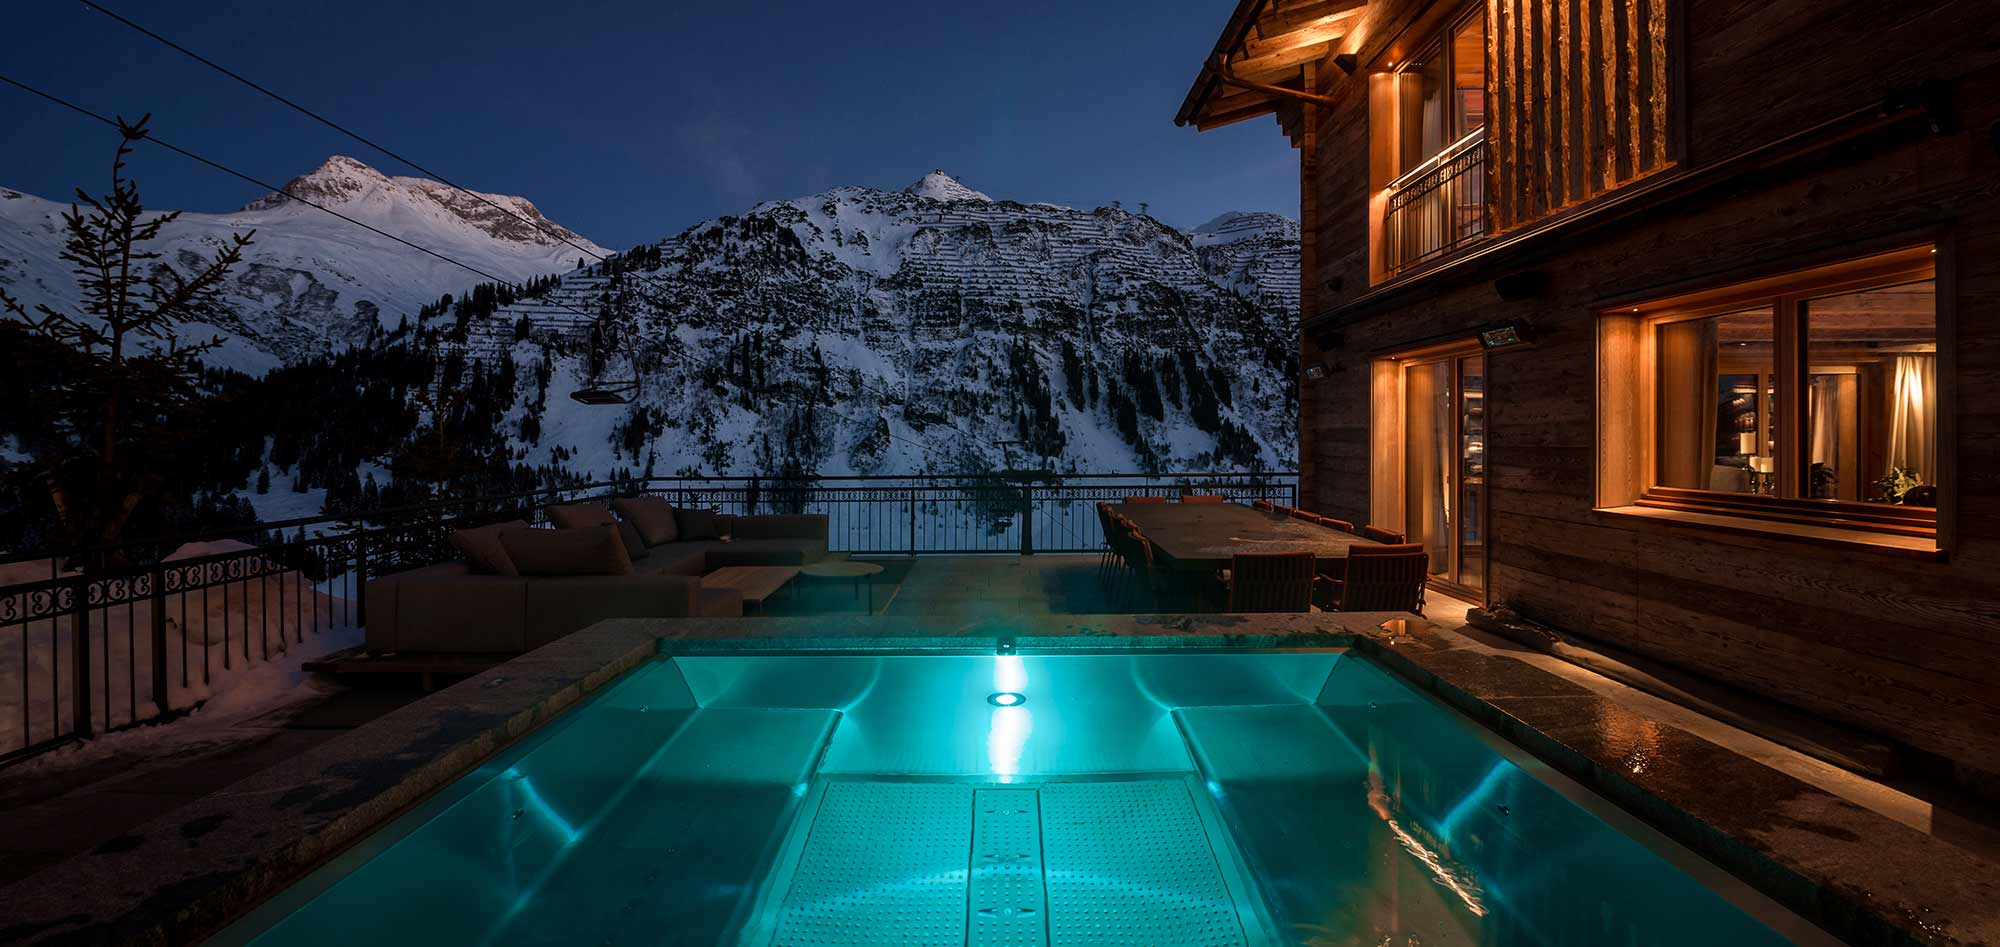 outdoor hot tub mountain view evening